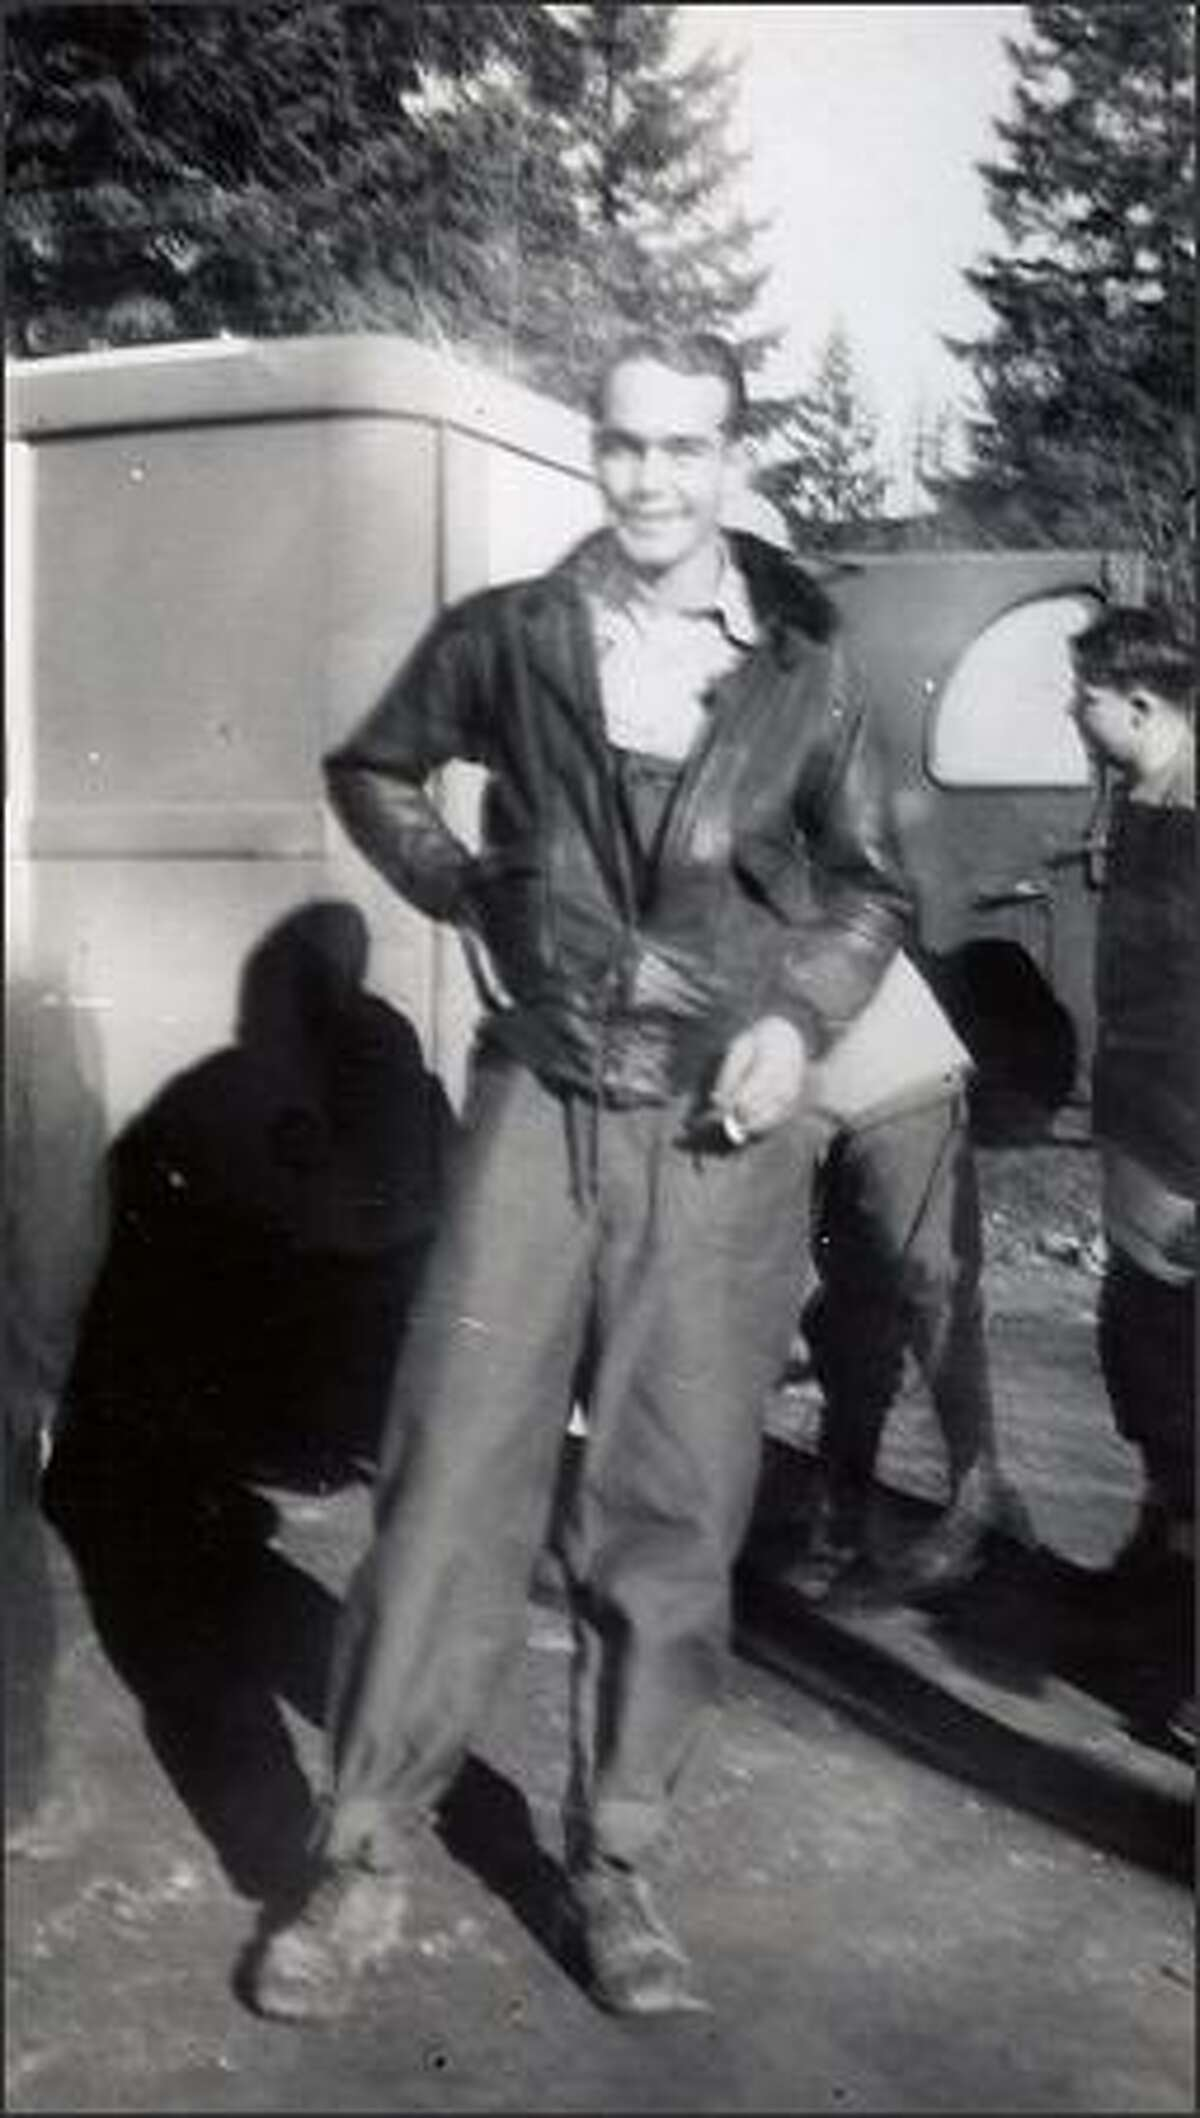 Marine Lt. Floyd Walling in a picture taken in December 1945. The parachute that was dug up may be one he used in bailing out. (Howard Hanson photo)